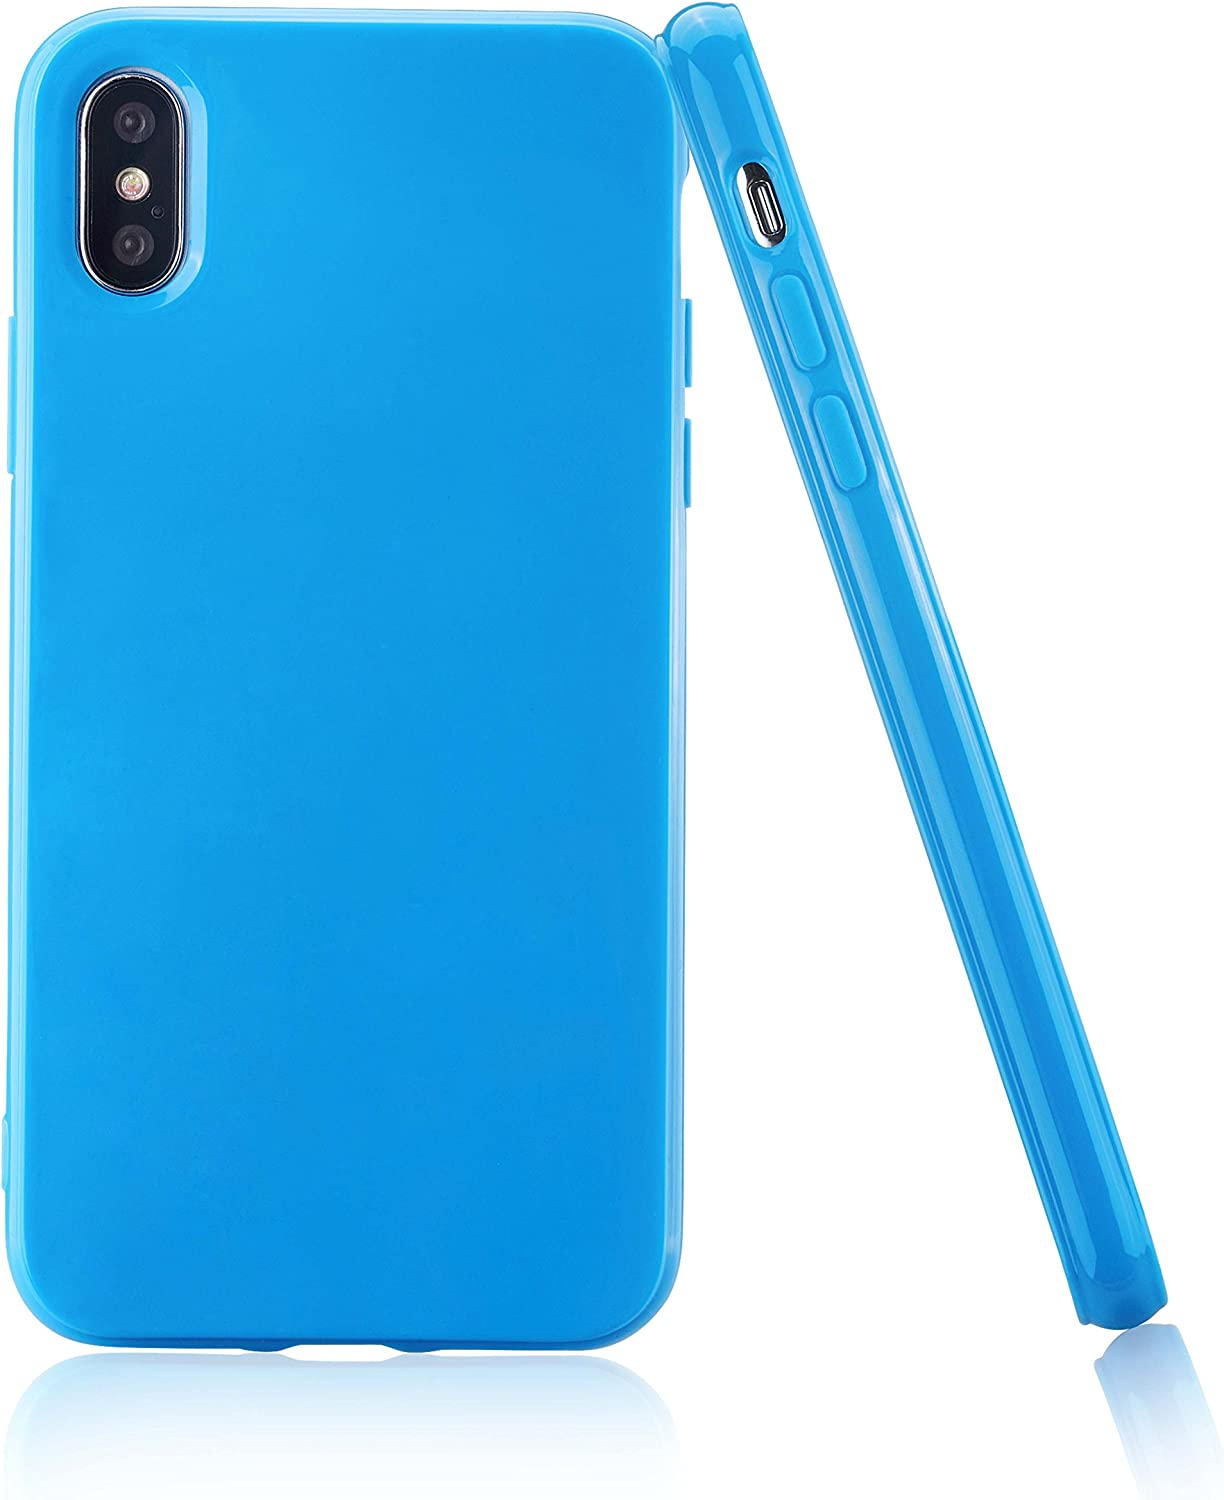 technext020 Shockproof Ultra Slim Fit Silicone iPhone 10R Cover TPU Soft Gel Rubber Cover Shock Resistance Protective Back Bumper for Apple iPhone XR Lavender for iPhone XR Lavender Case